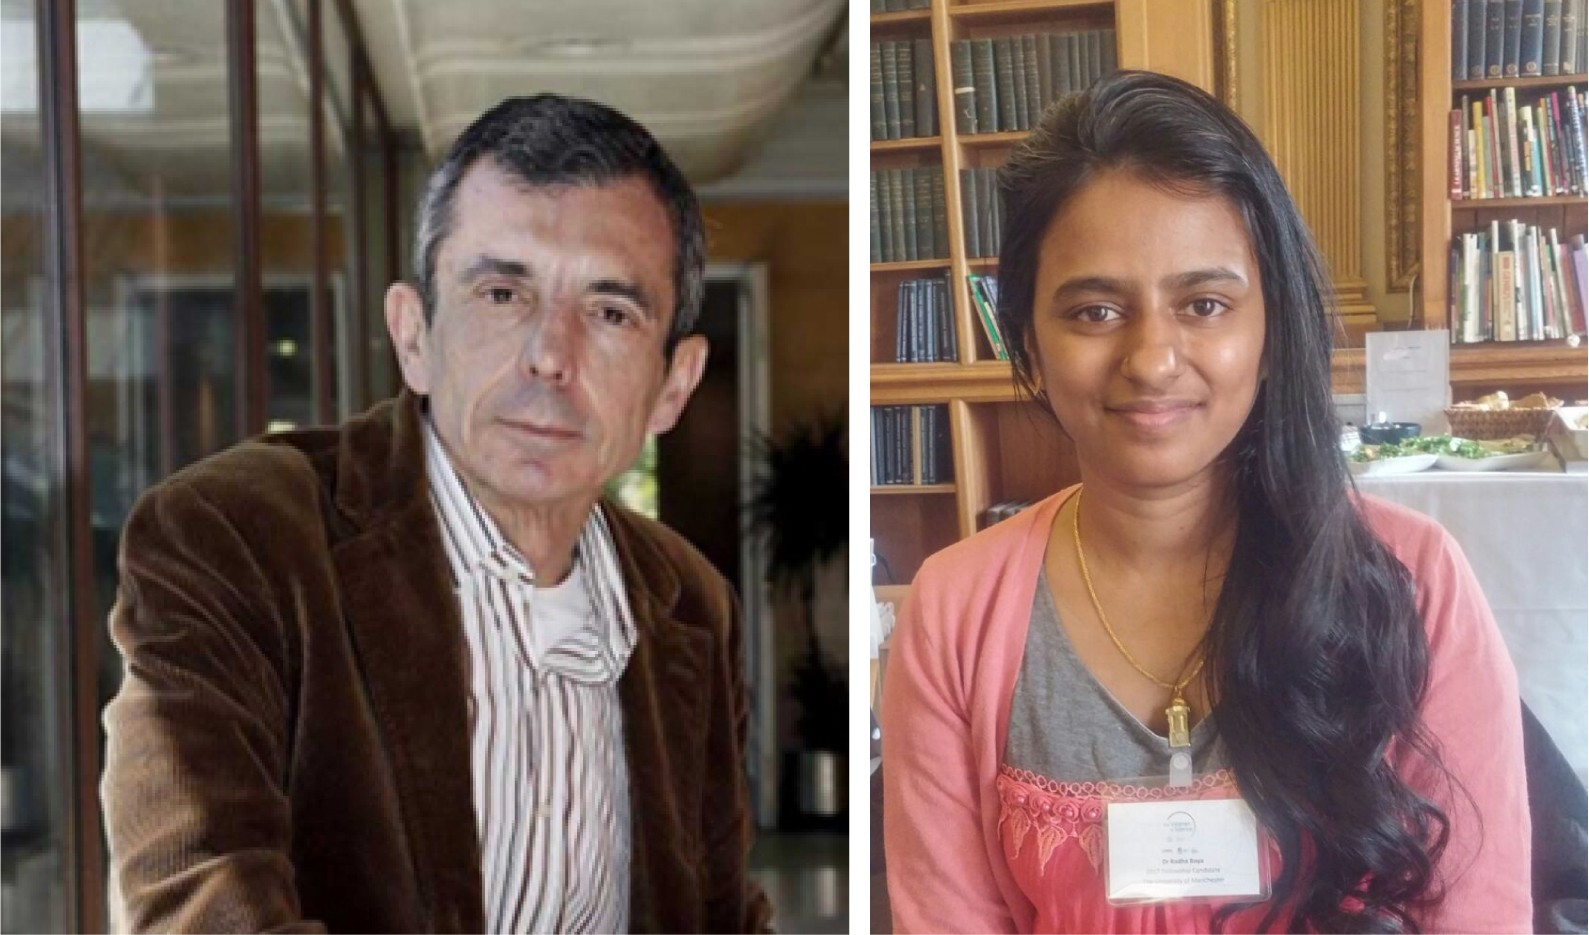 Prof Guinea and Dr Boya